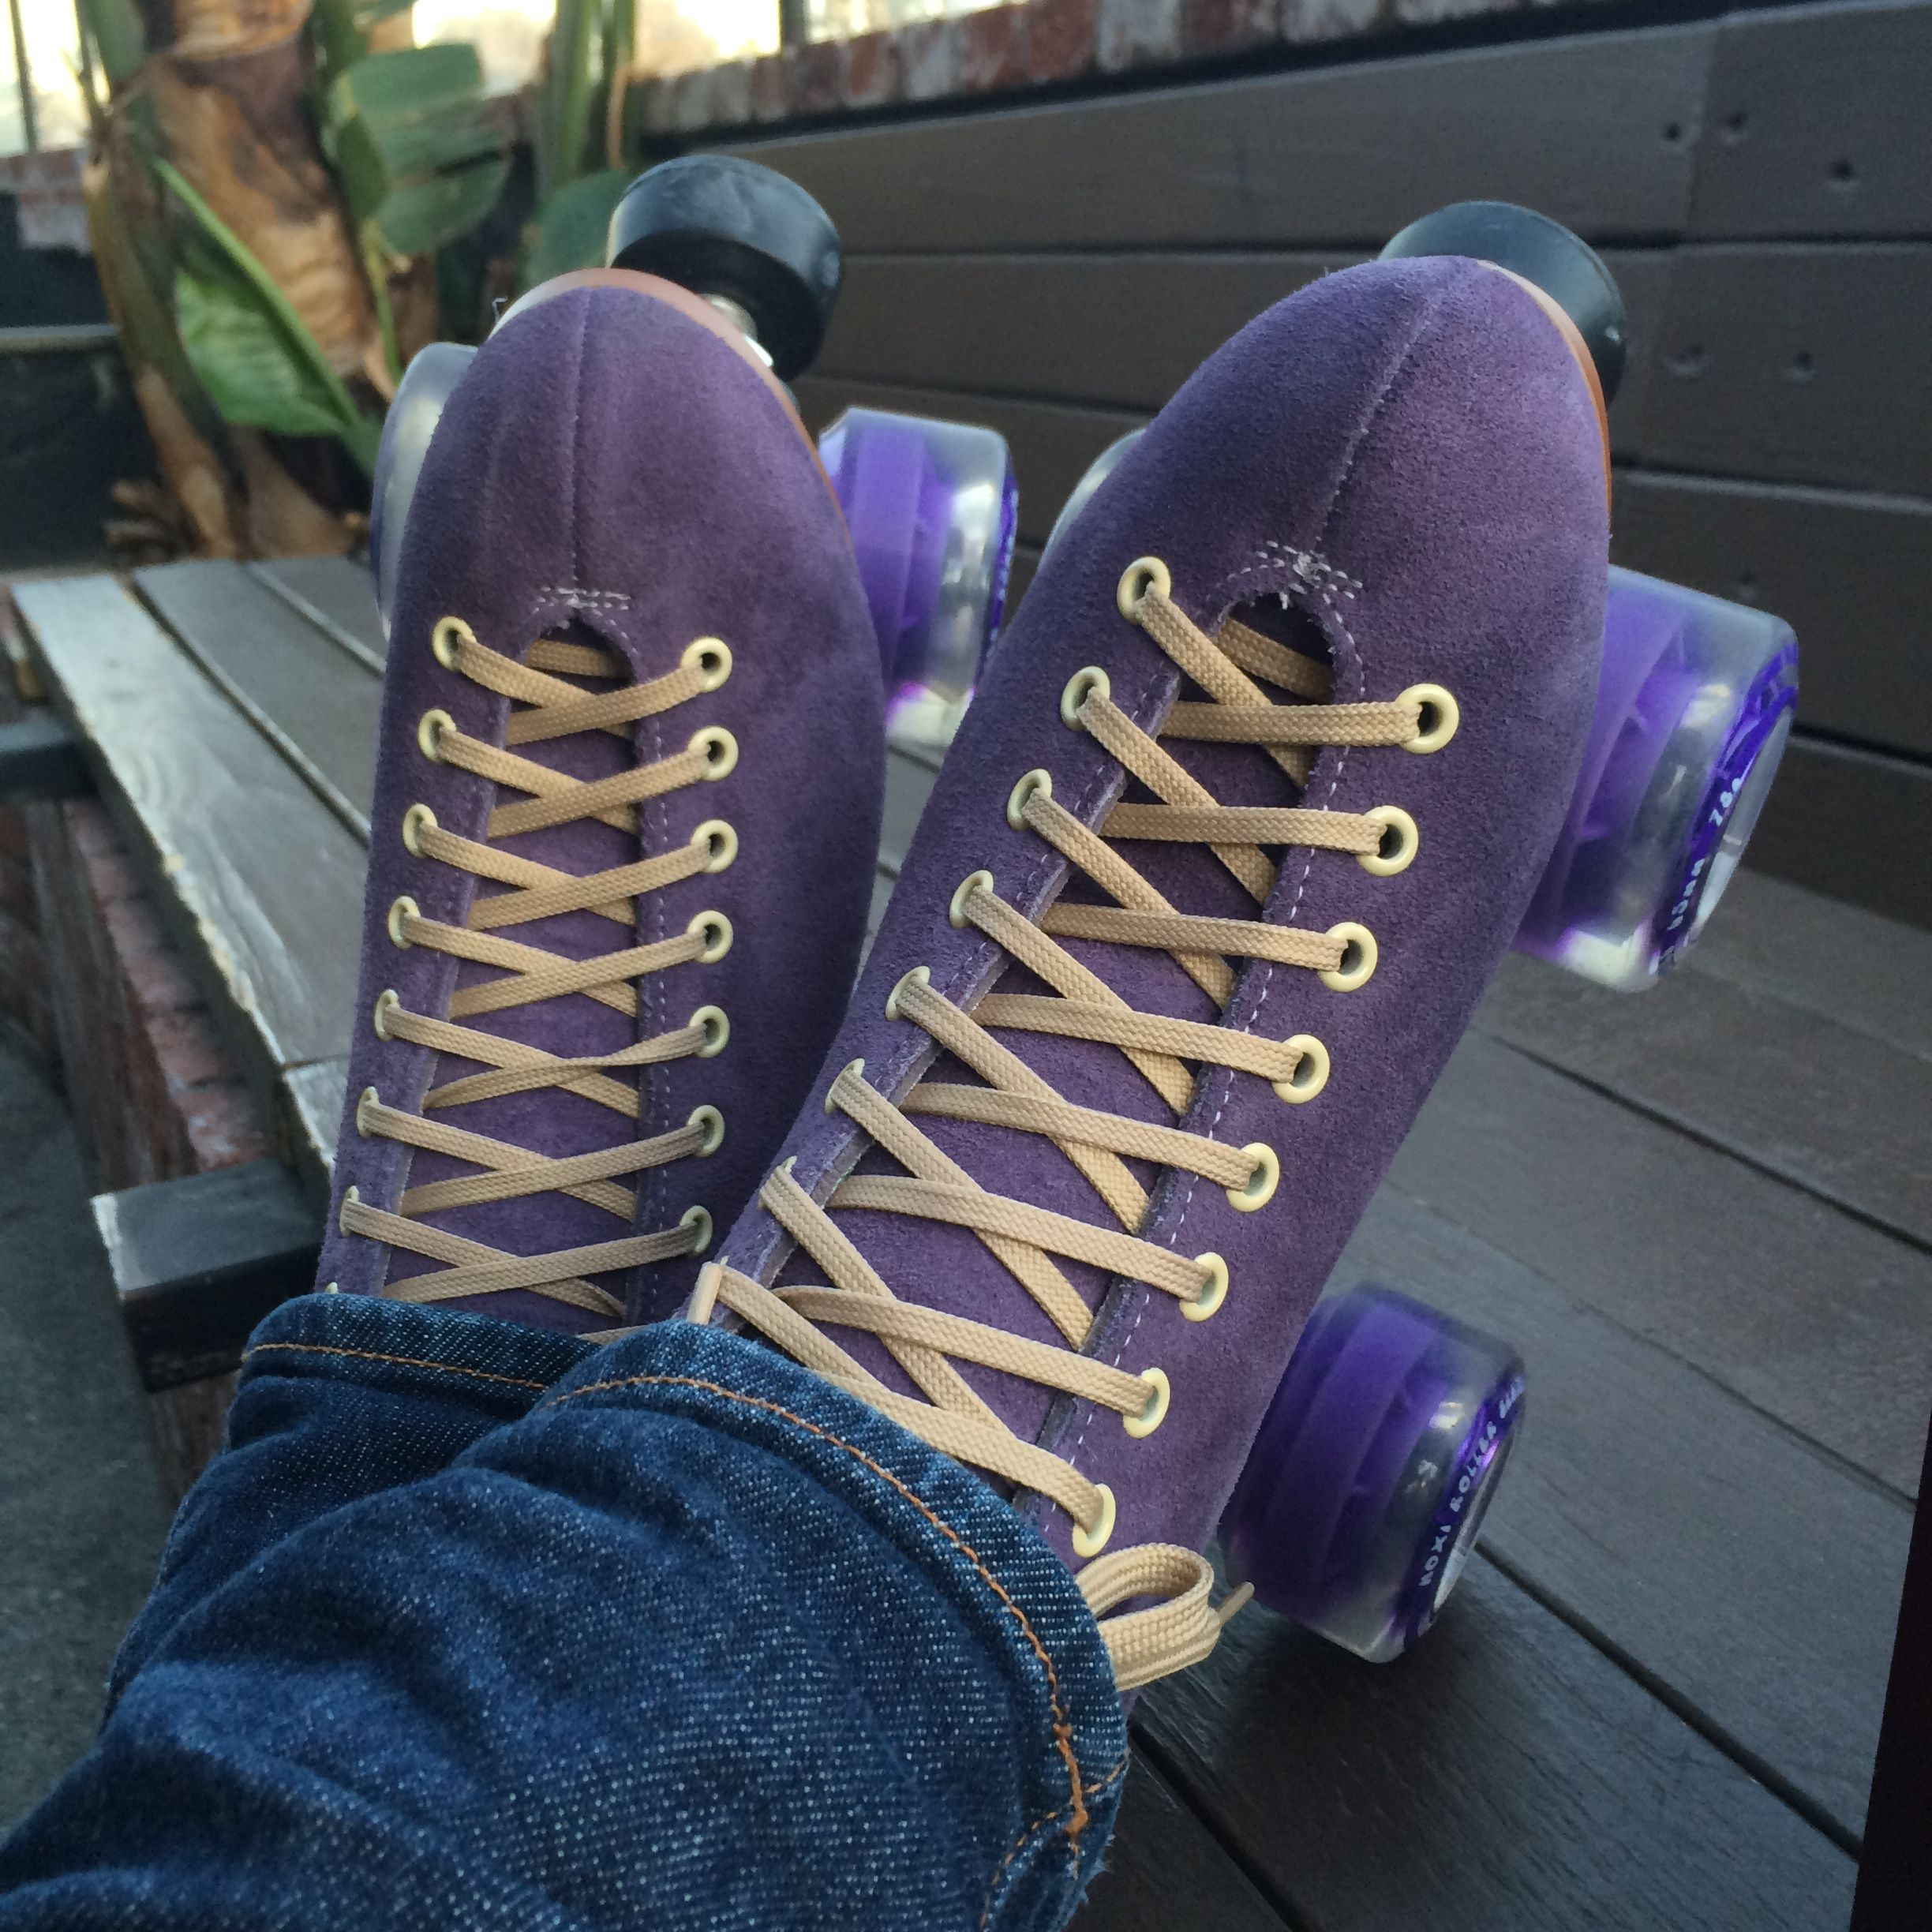 Pin by Annie Brierre on Rollergirl 4 lyfe (With images